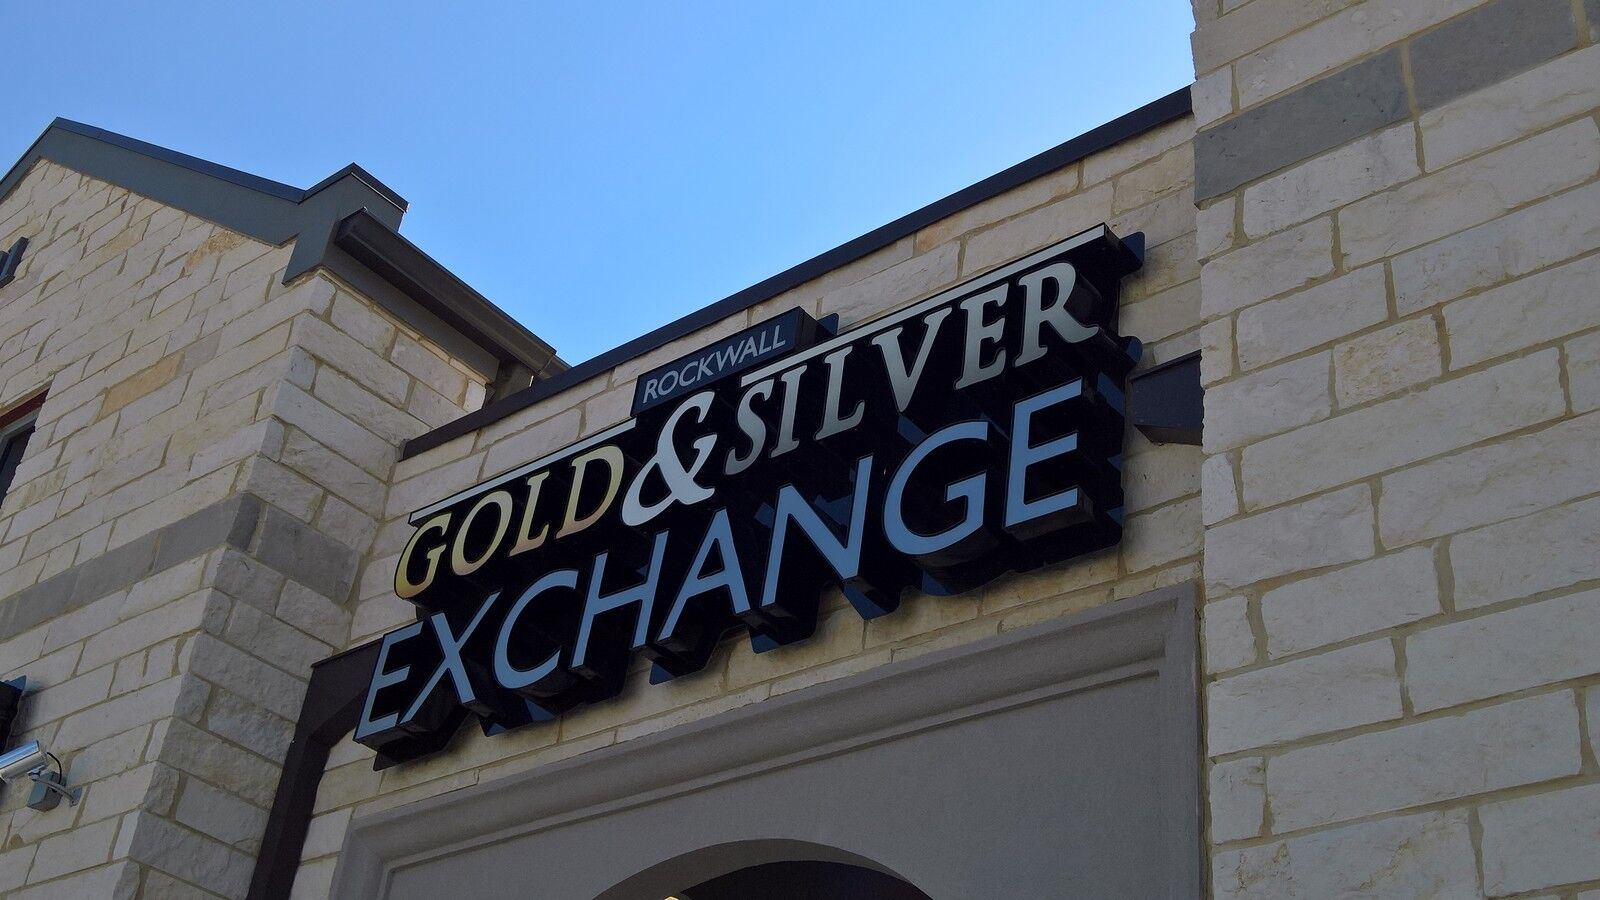 Rockwall Gold & Silver Exchange